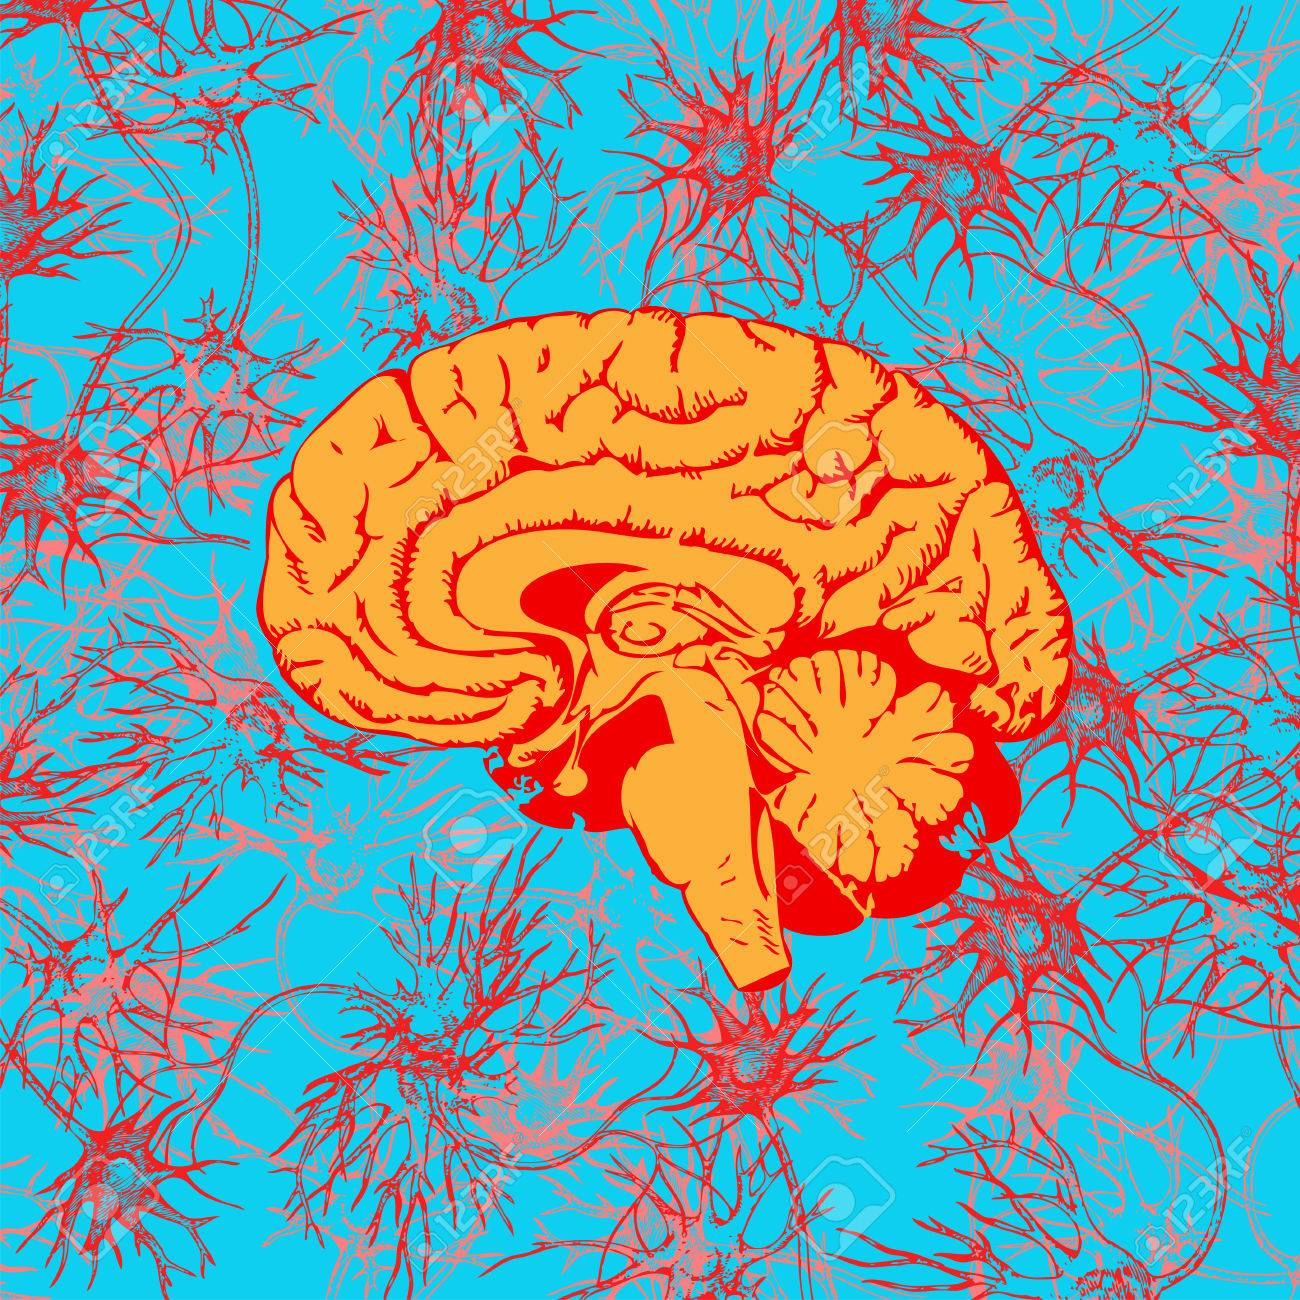 Human brain penetrated by neural communications - 6850327